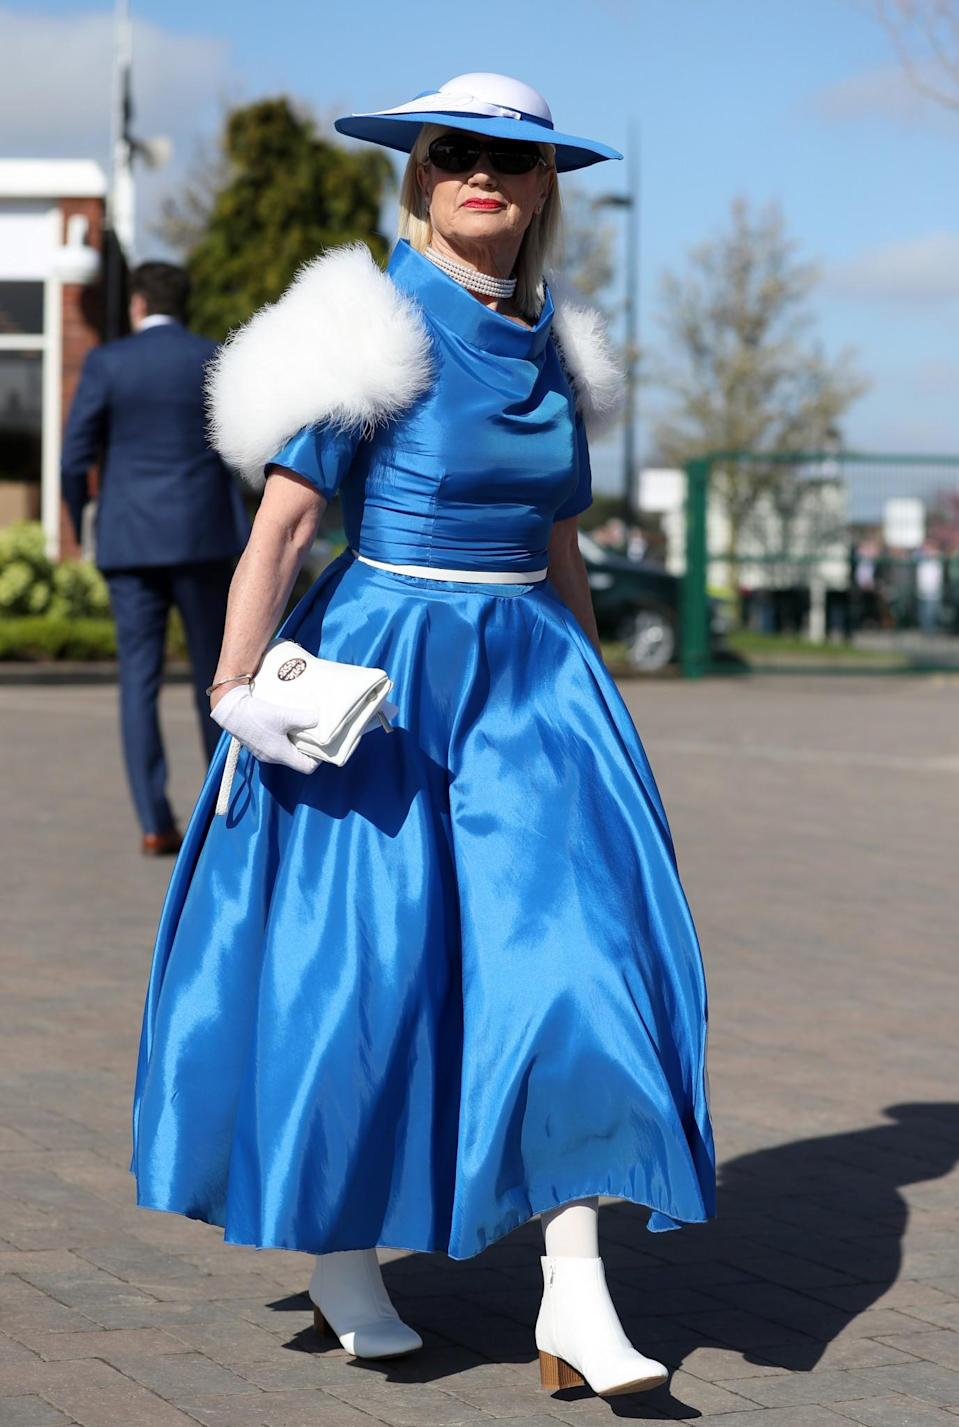 <p>Throwing out all of those Elsa from Frozen vibes [Photo: PA] </p>